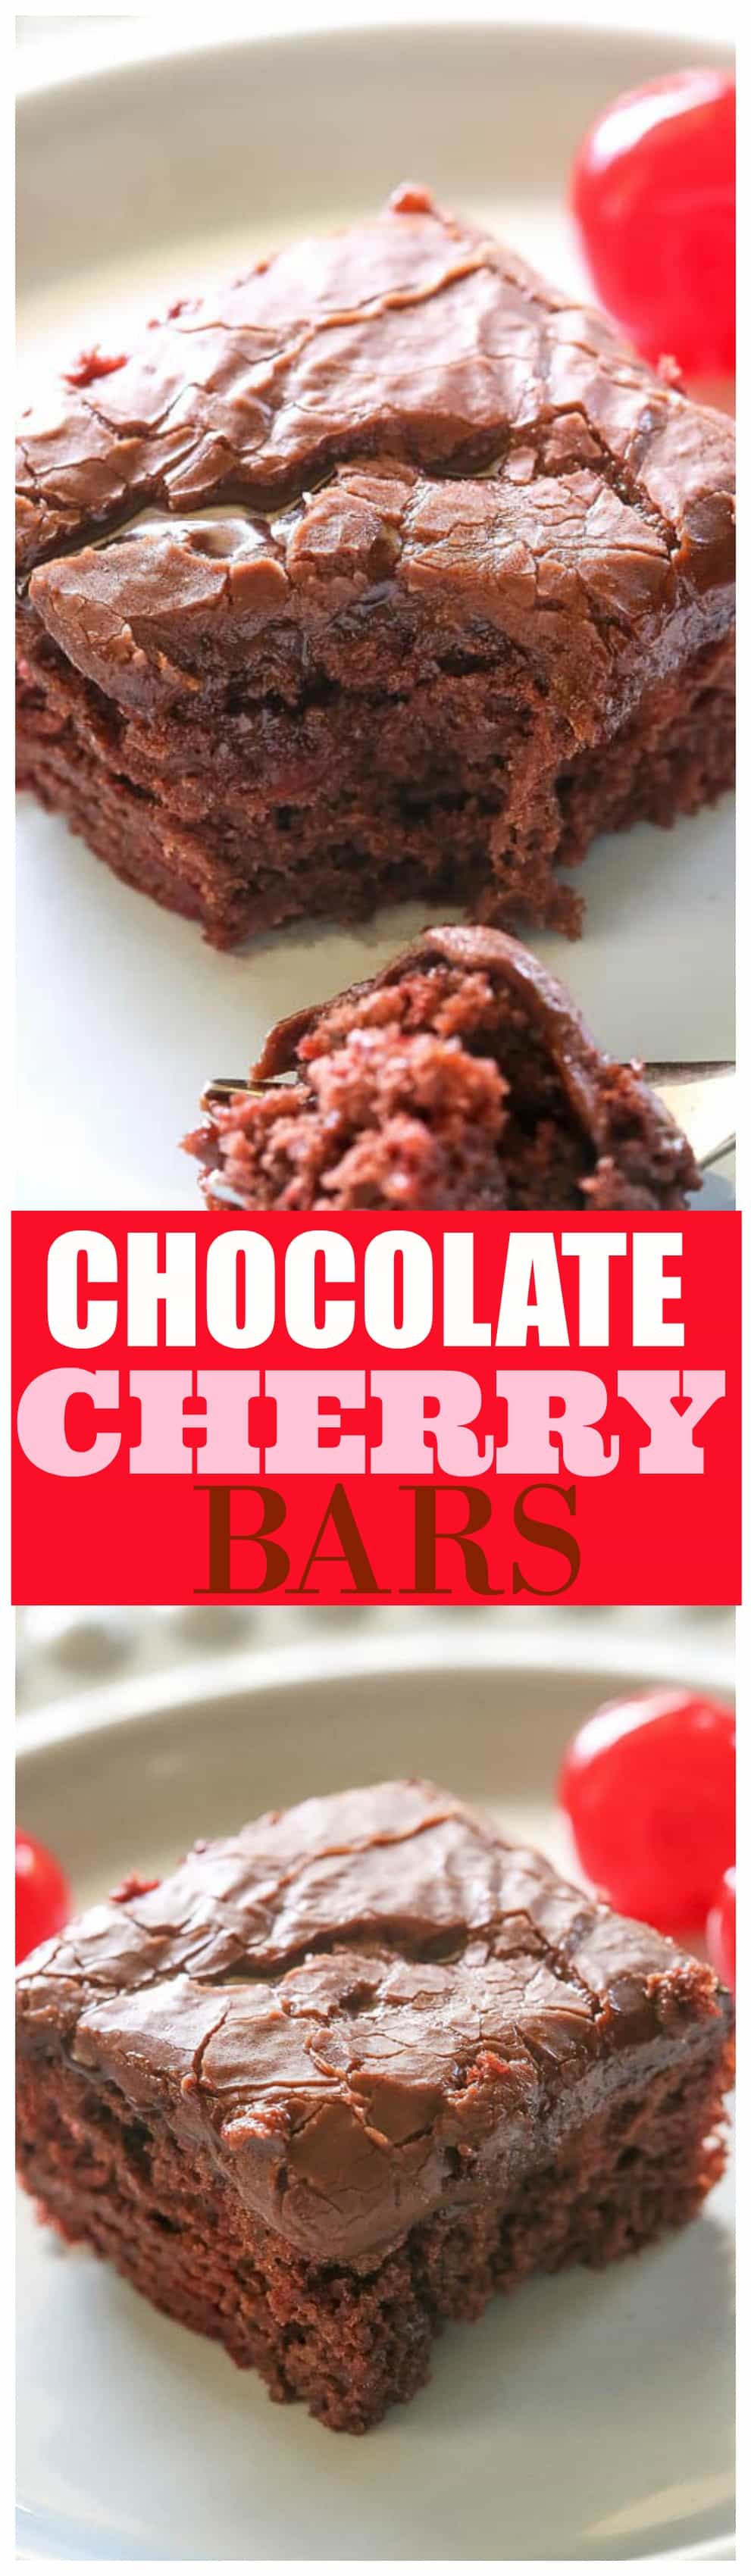 Chocolate Cherry Bars - so easy and a great potluck dessert. #chocolate #cherry #bars #dessert #recipe